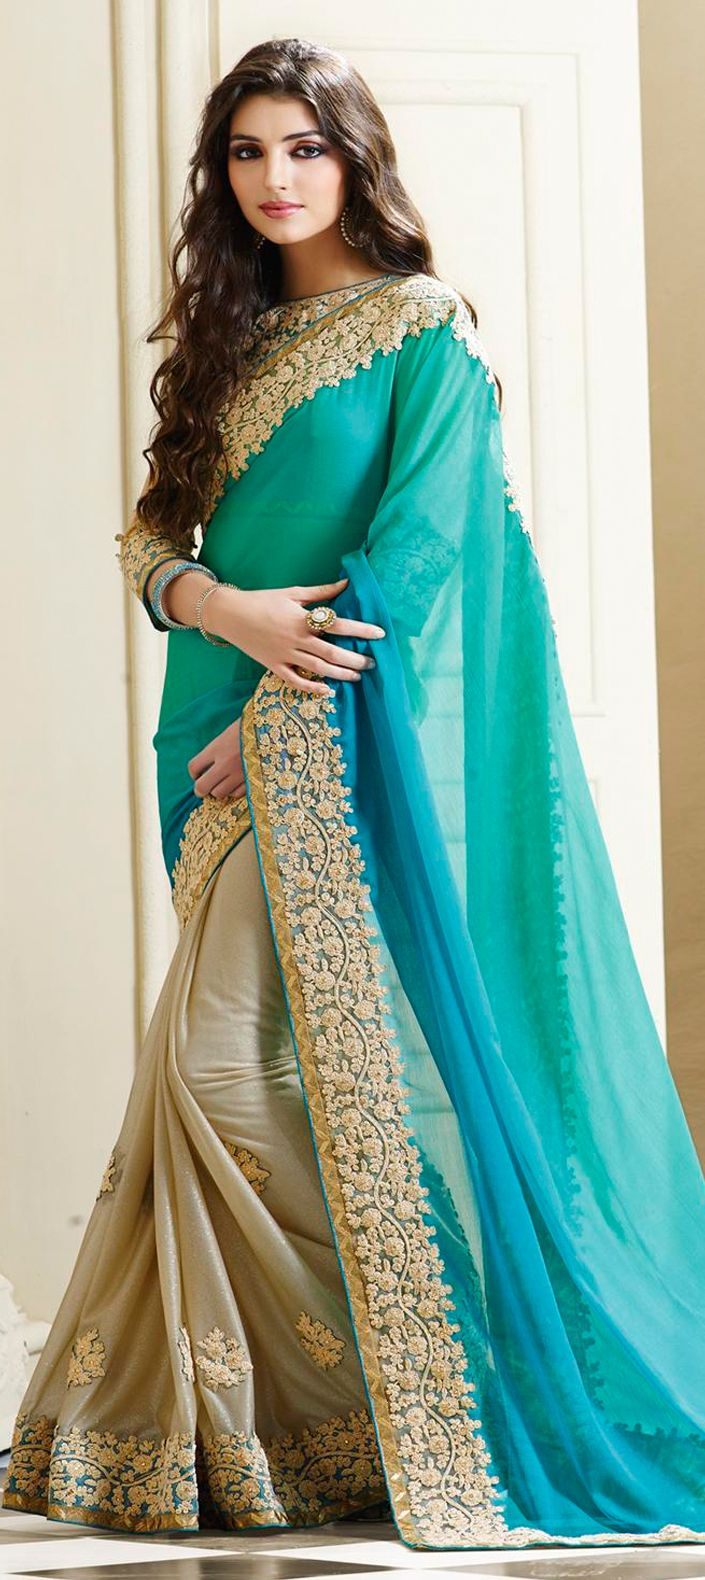 23 best Indian wear images on Pinterest | Indian saris, Indian ...